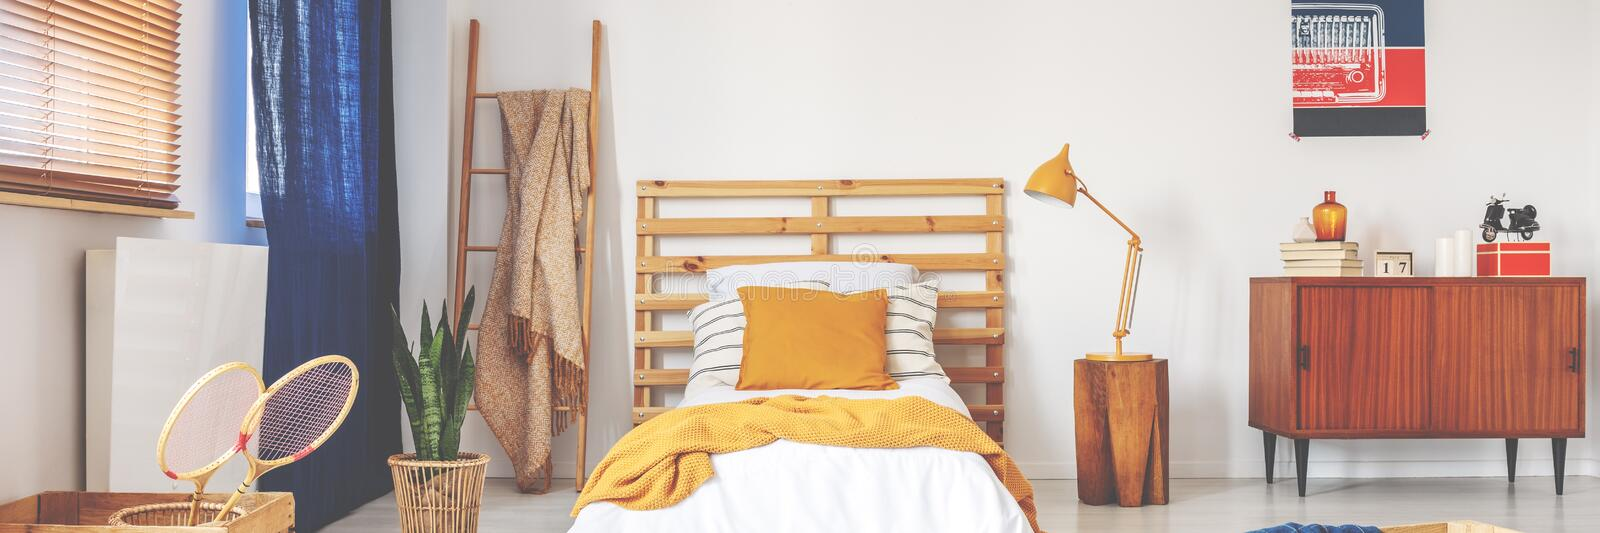 Bed with wooden bedhead, white sheets, ochre cushion and yellow knit blanket royalty free stock photography